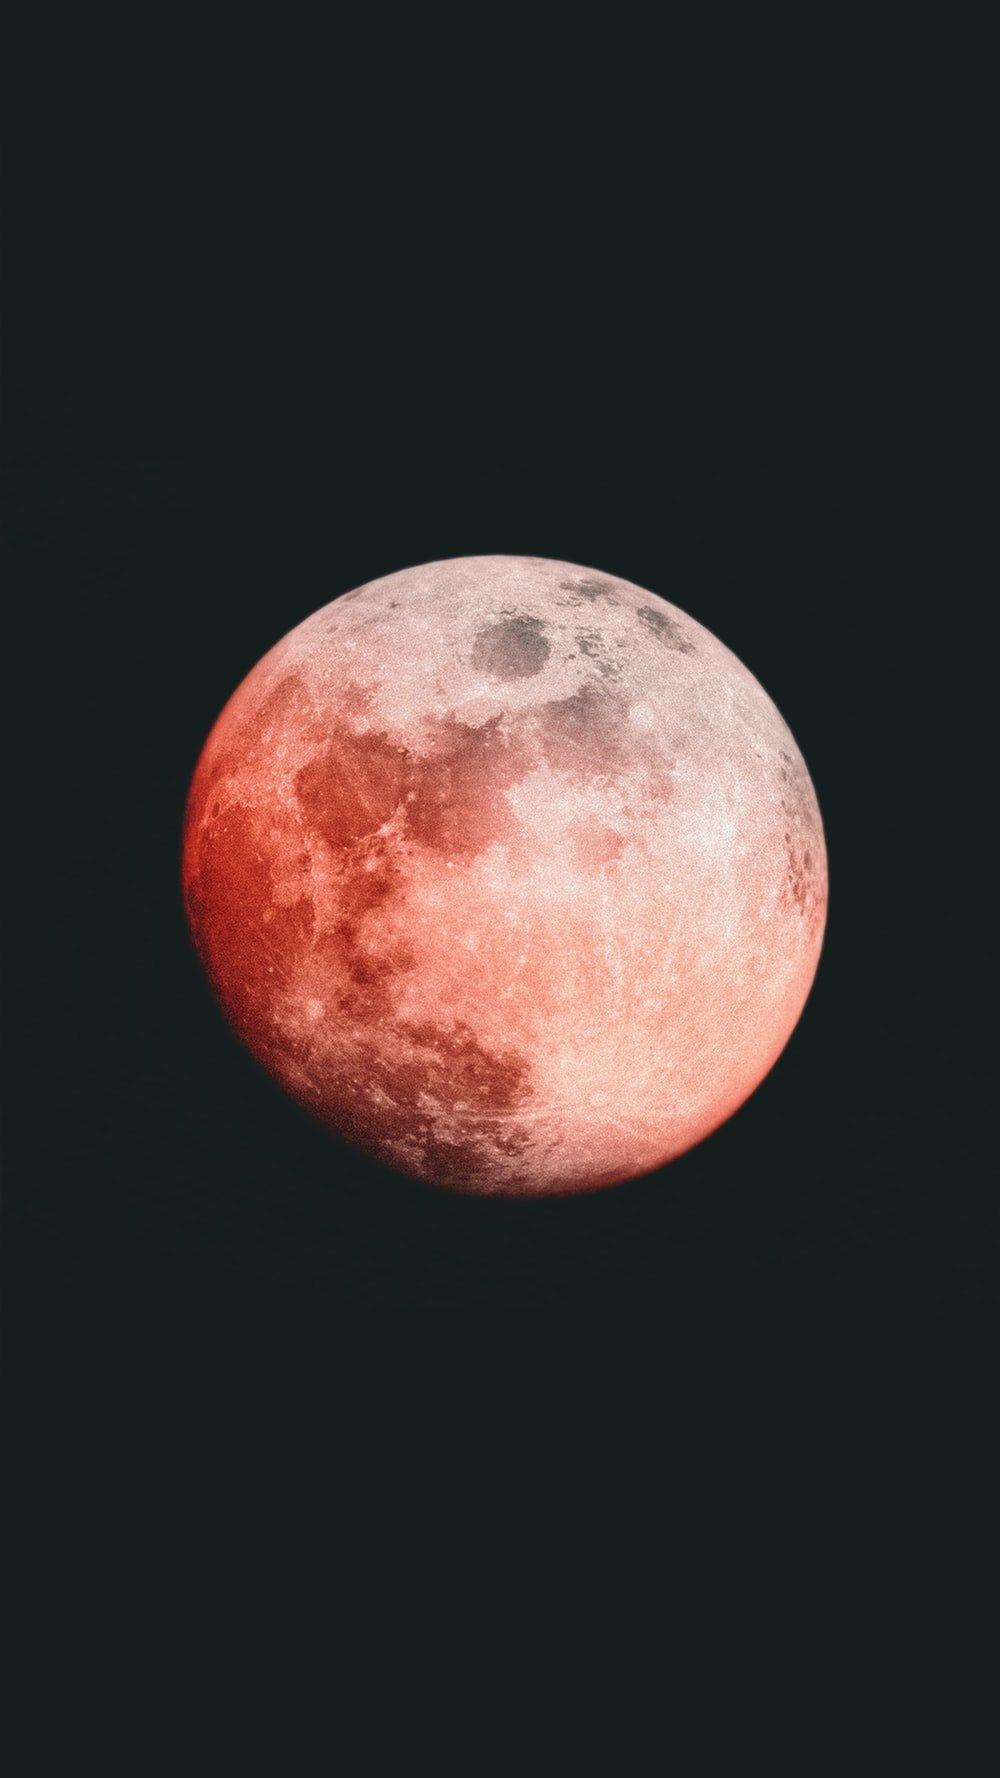 red and white moon illustration